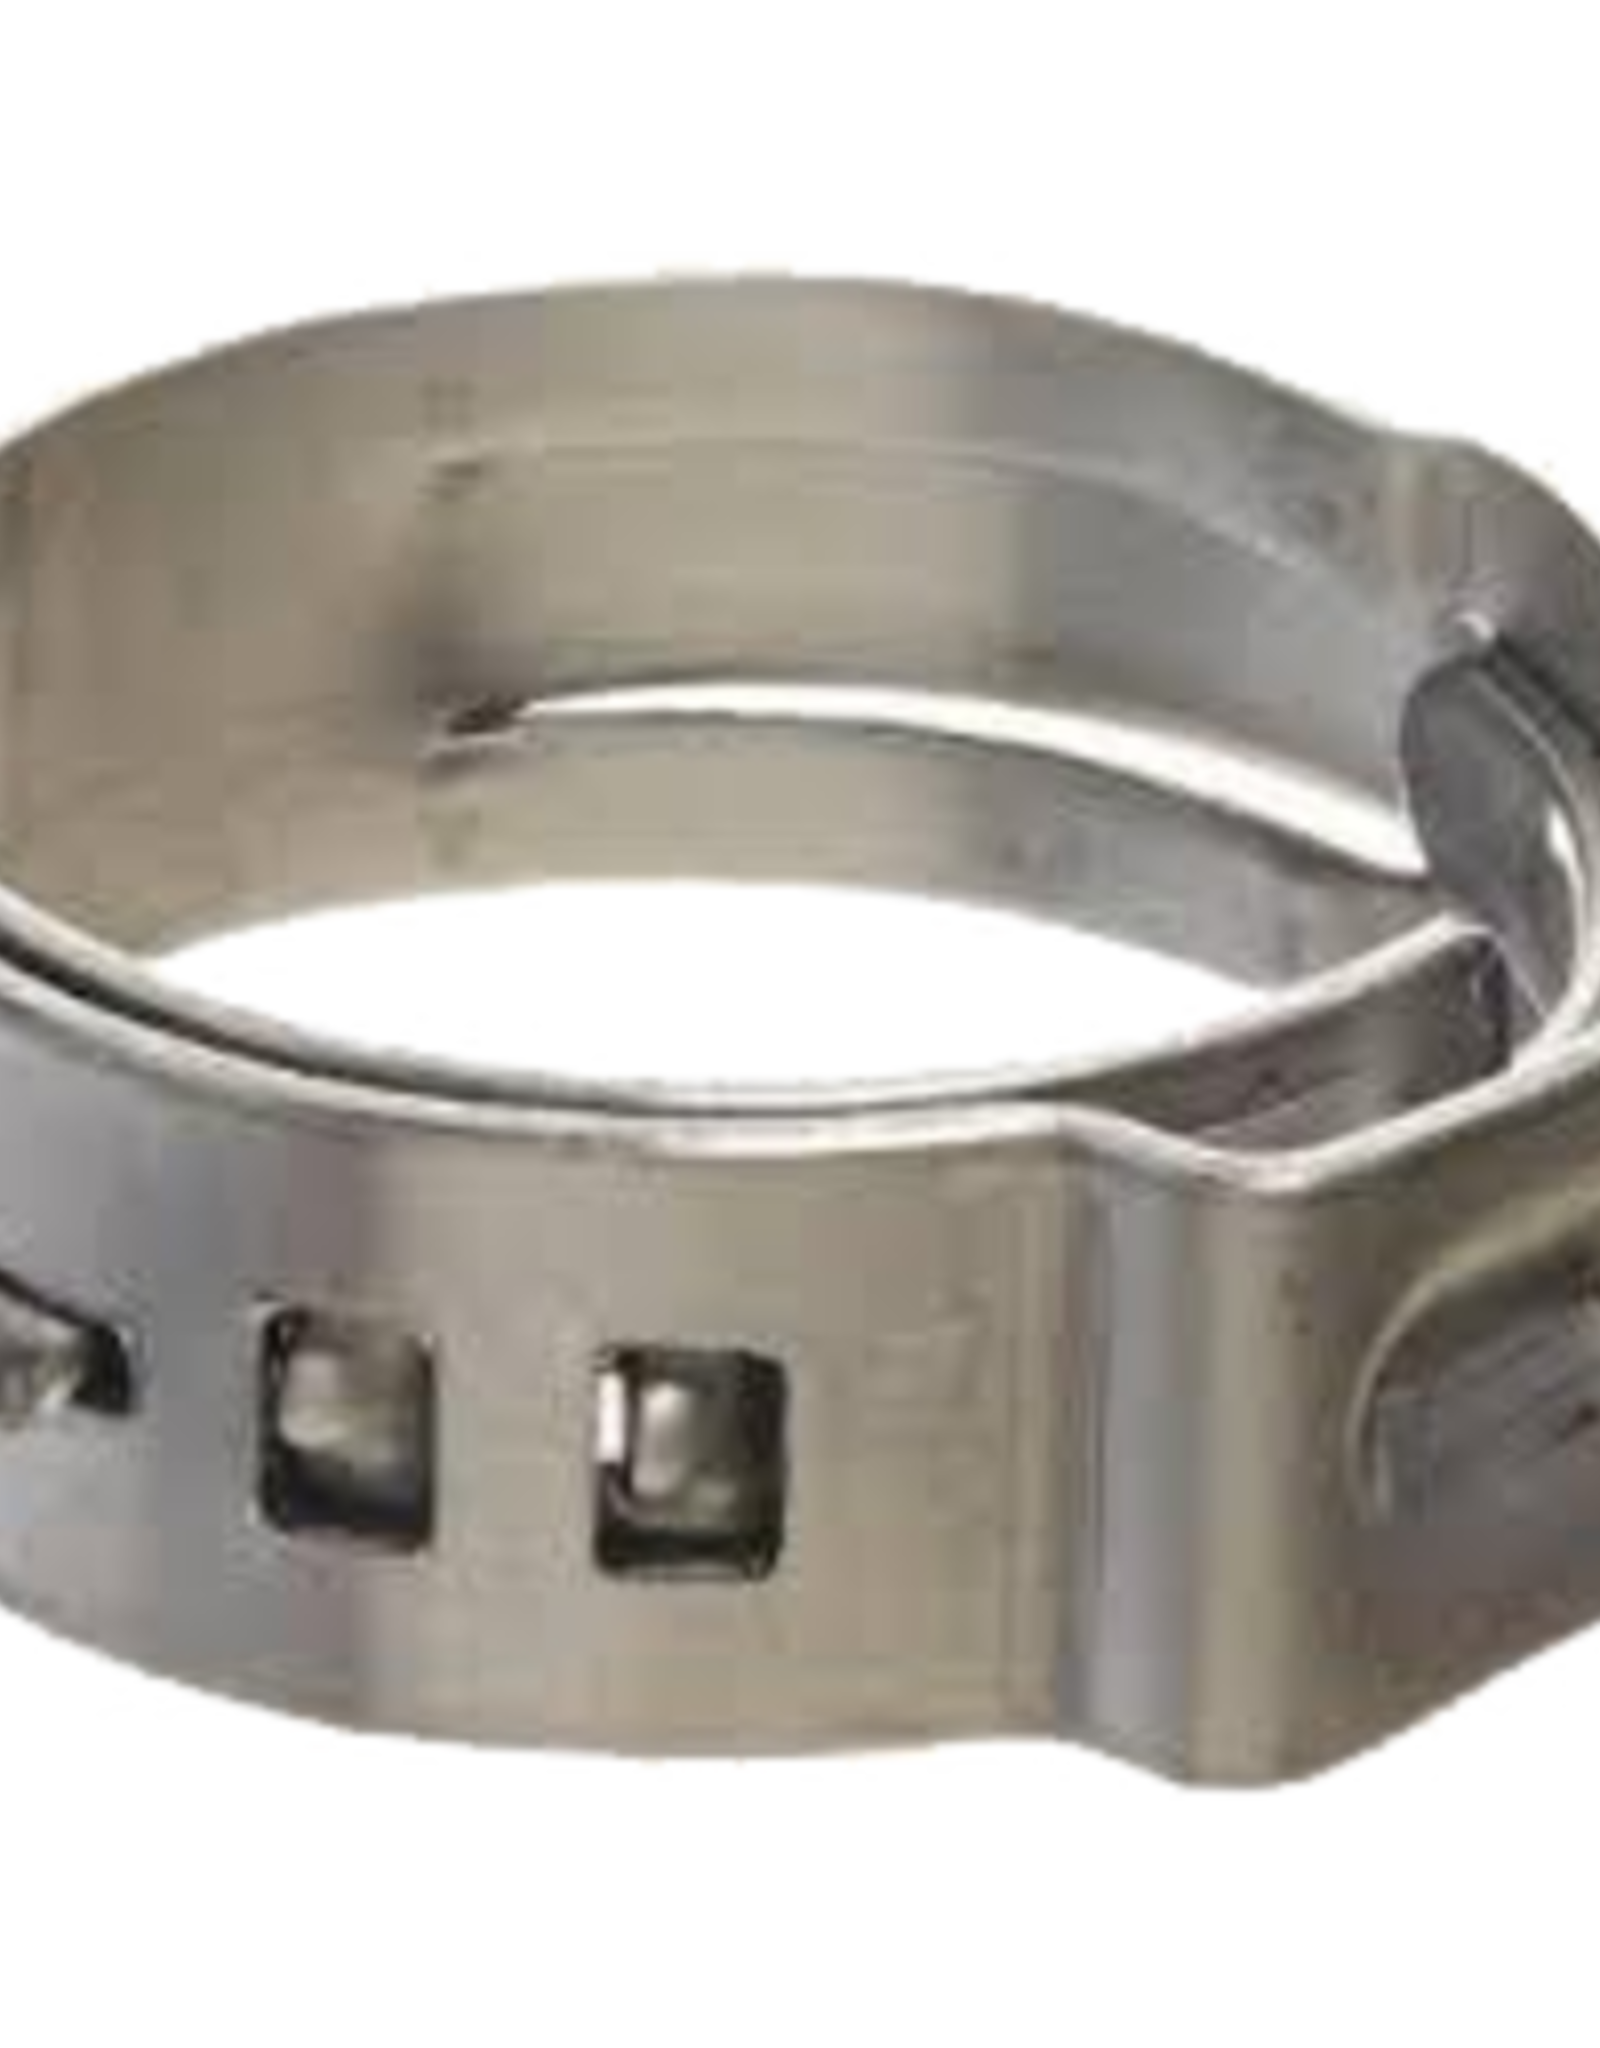 """Stepless Hose Clamp - 5/8 in. OD Tubing ( fits 1/4"""" beer line)"""